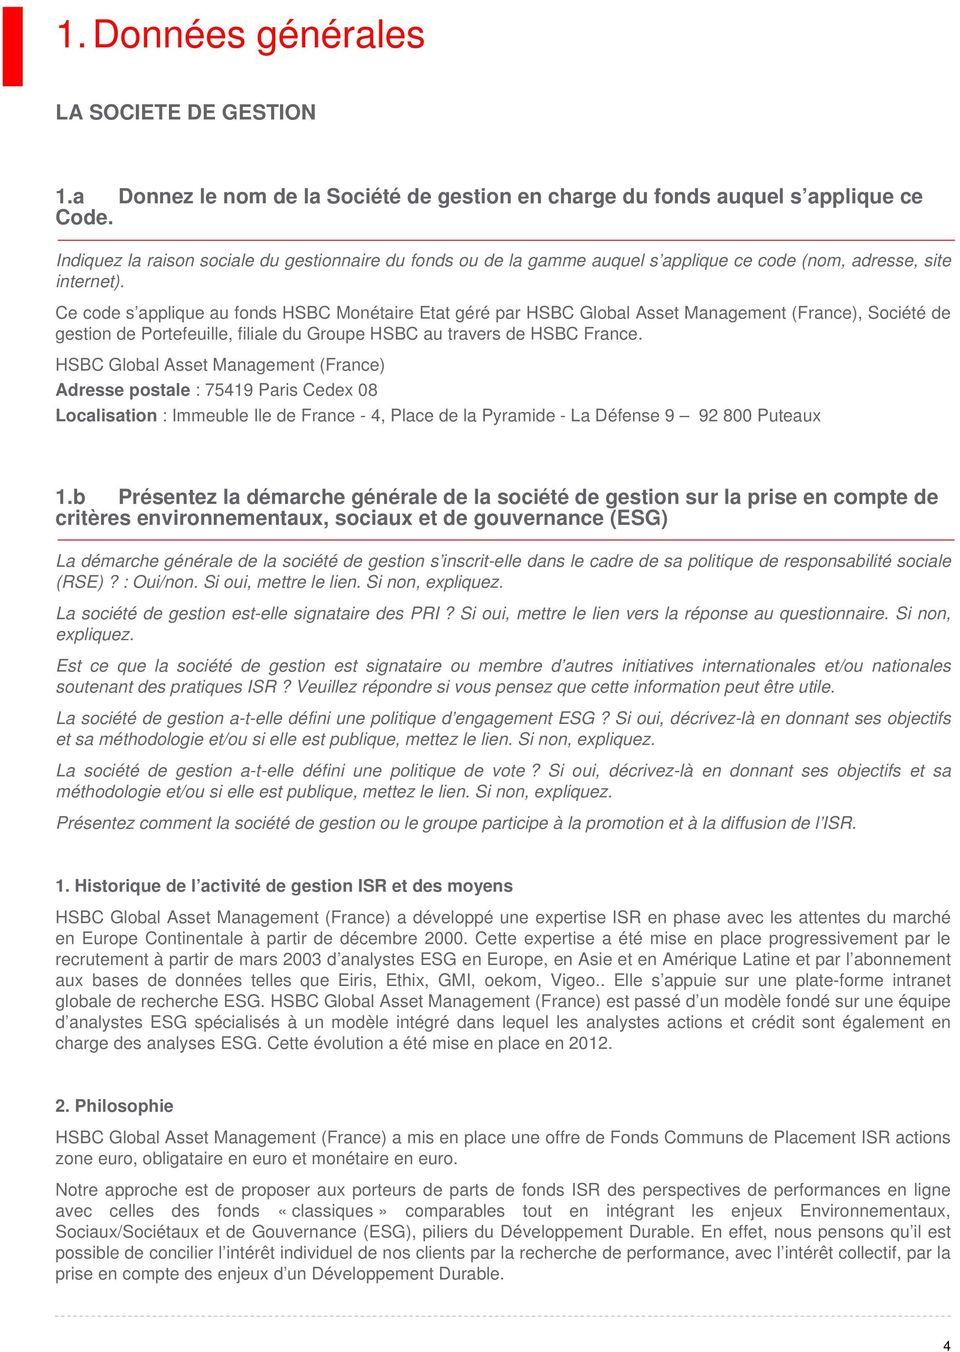 Ce code s applique au fonds HSBC Monétaire Etat géré par HSBC Global Asset Management (France), Société de gestion de Portefeuille, filiale du Groupe HSBC au travers de HSBC France.